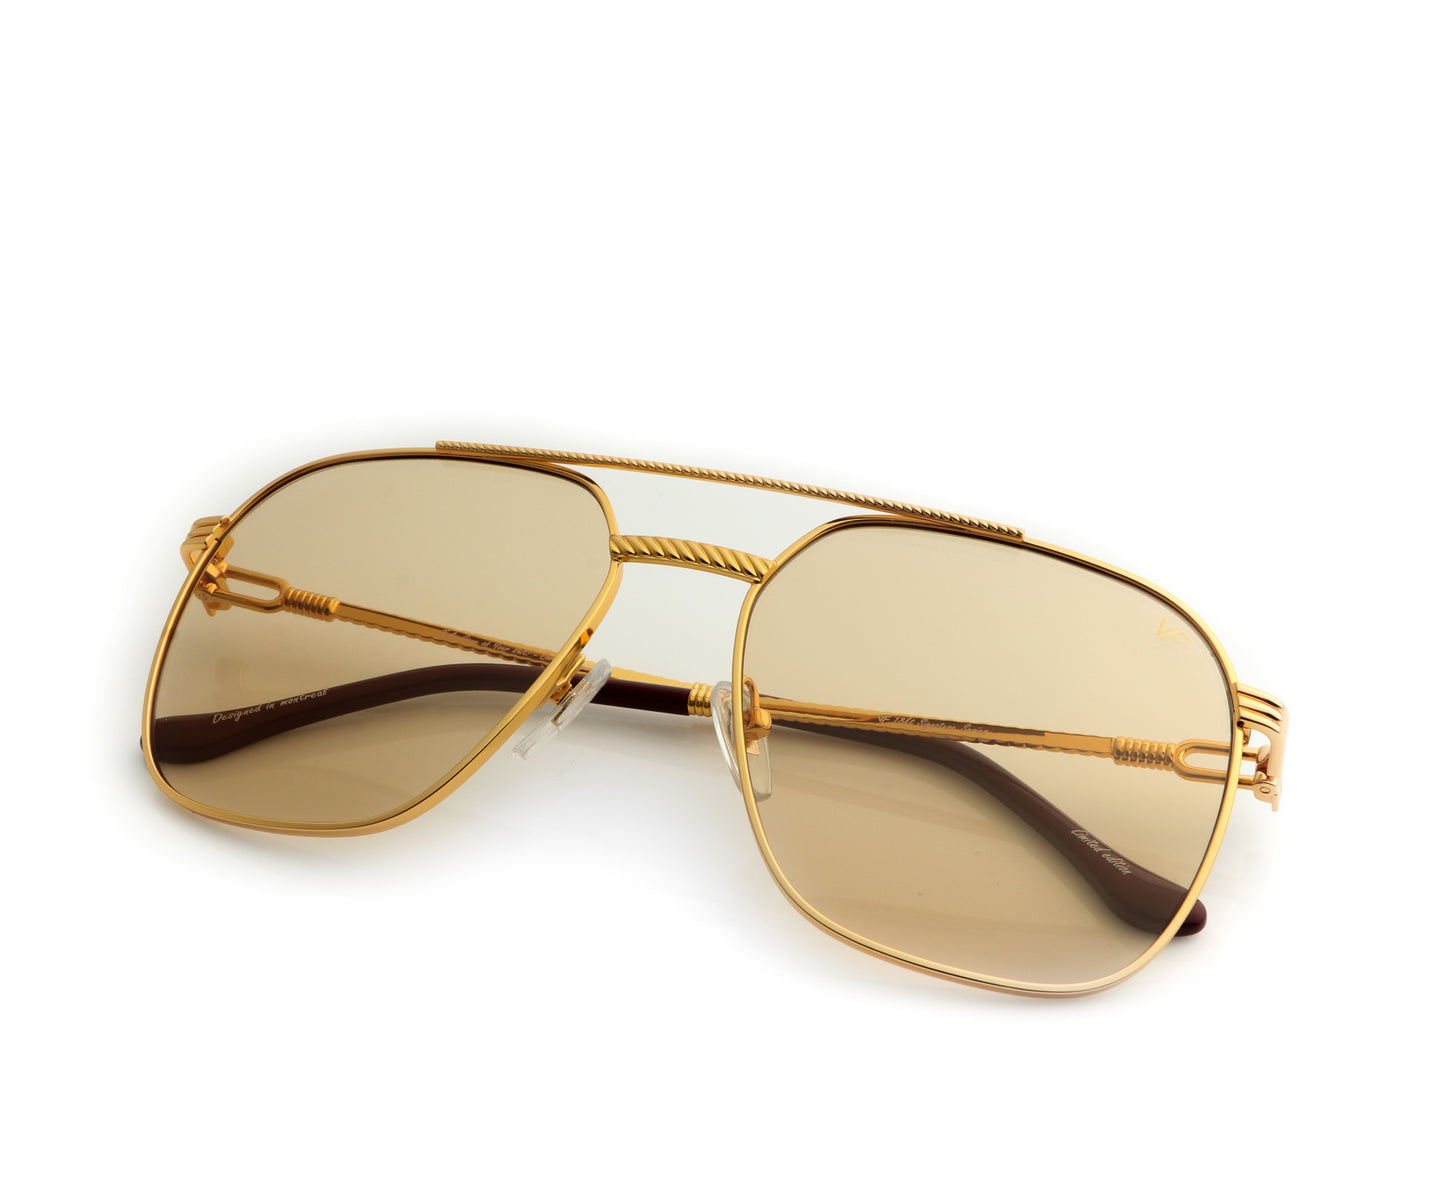 VF Narcos 18KT Gold (Amber), VF Masterpiece , glasses frames, eyeglasses online, eyeglass frames, mens glasses, womens glasses, buy glasses online, designer eyeglasses, vintage sunglasses, retro sunglasses, vintage glasses, sunglass, eyeglass, glasses, lens, vintage frames company, vf